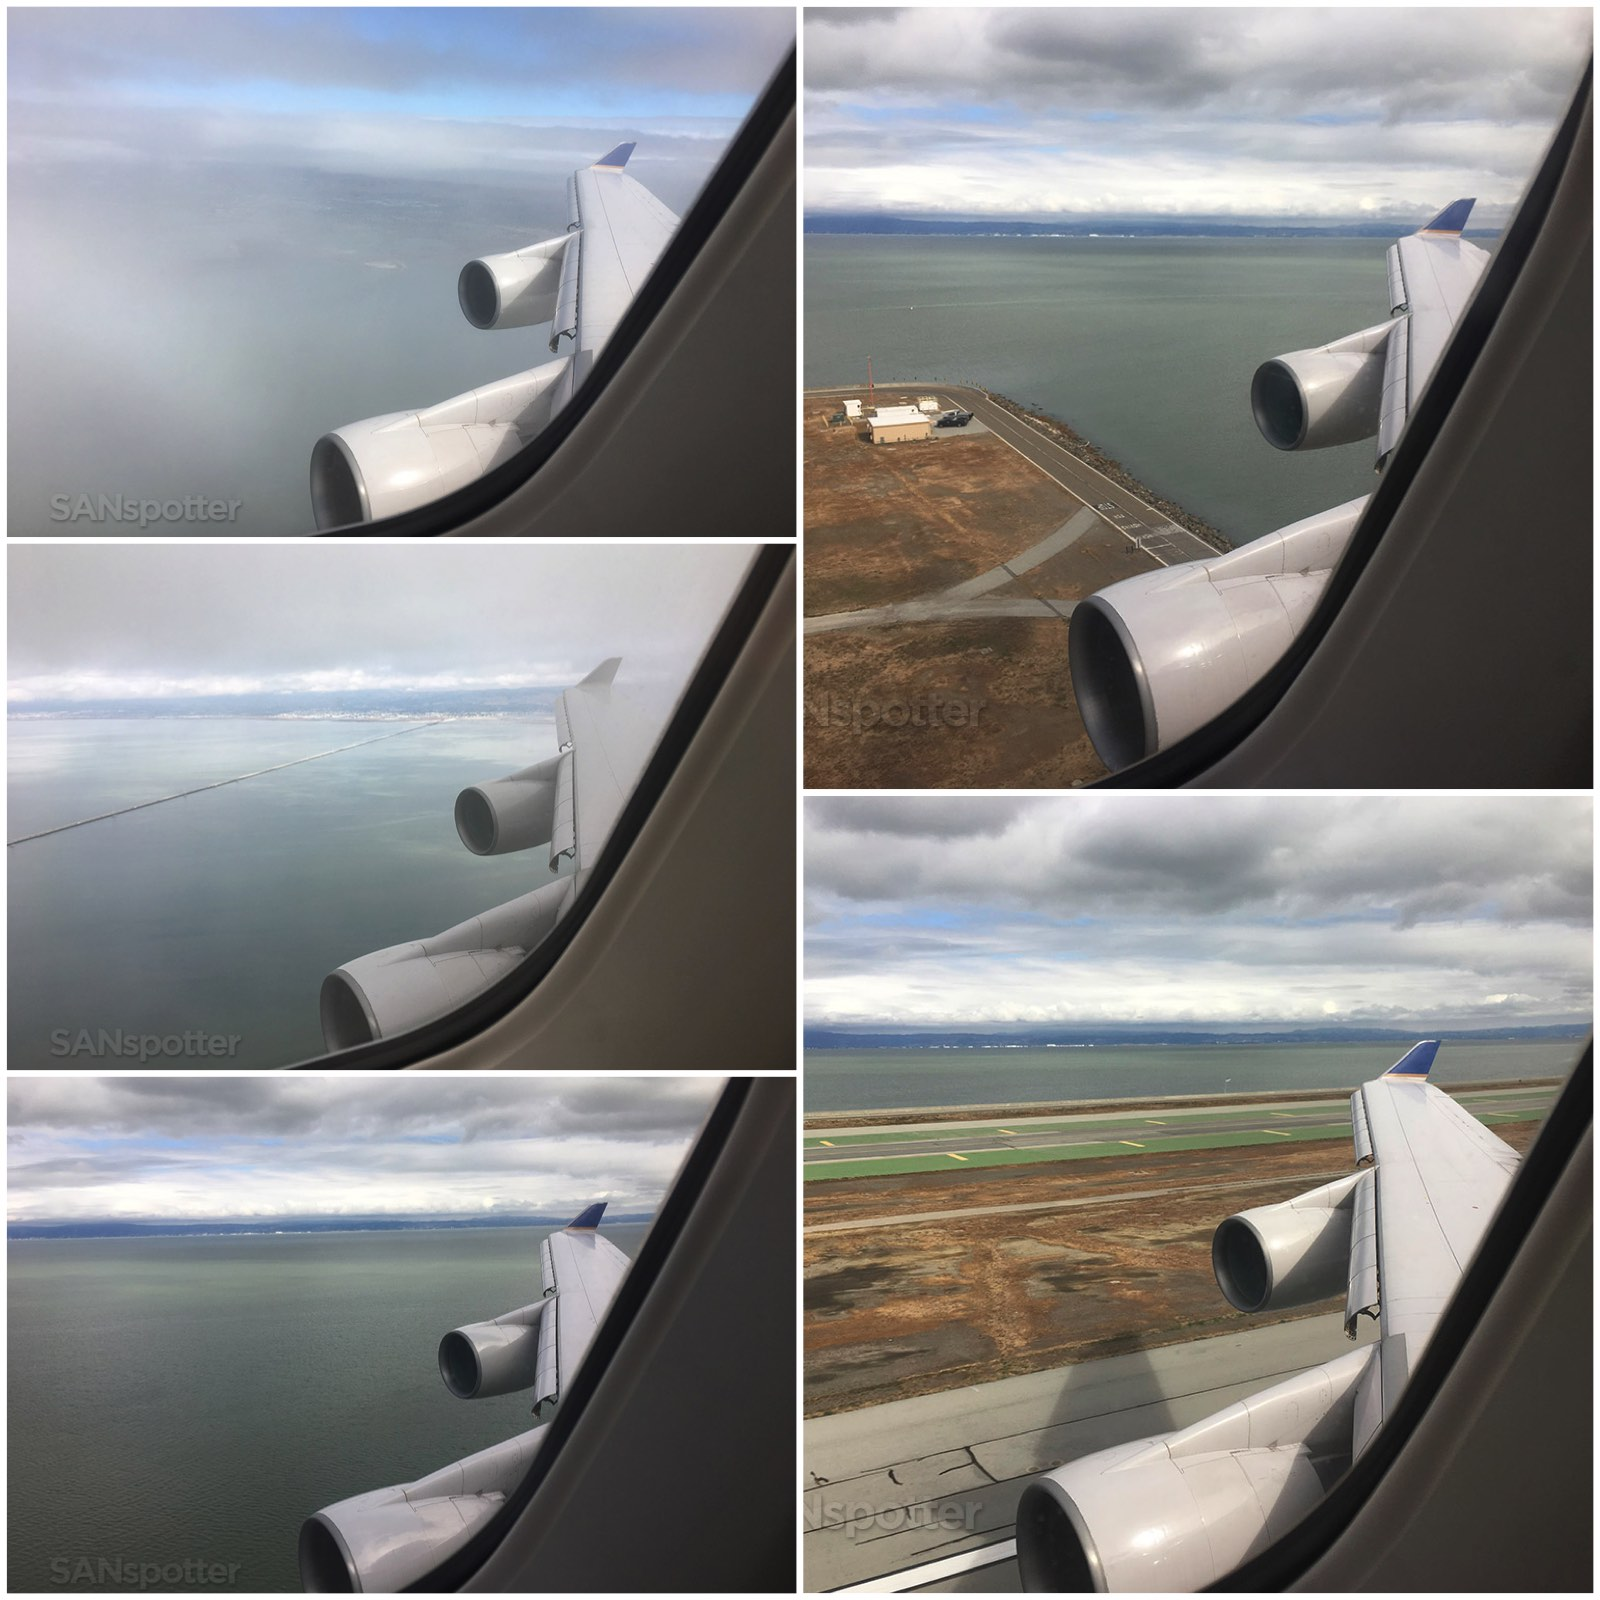 Landing at SFO in a United airlines 747